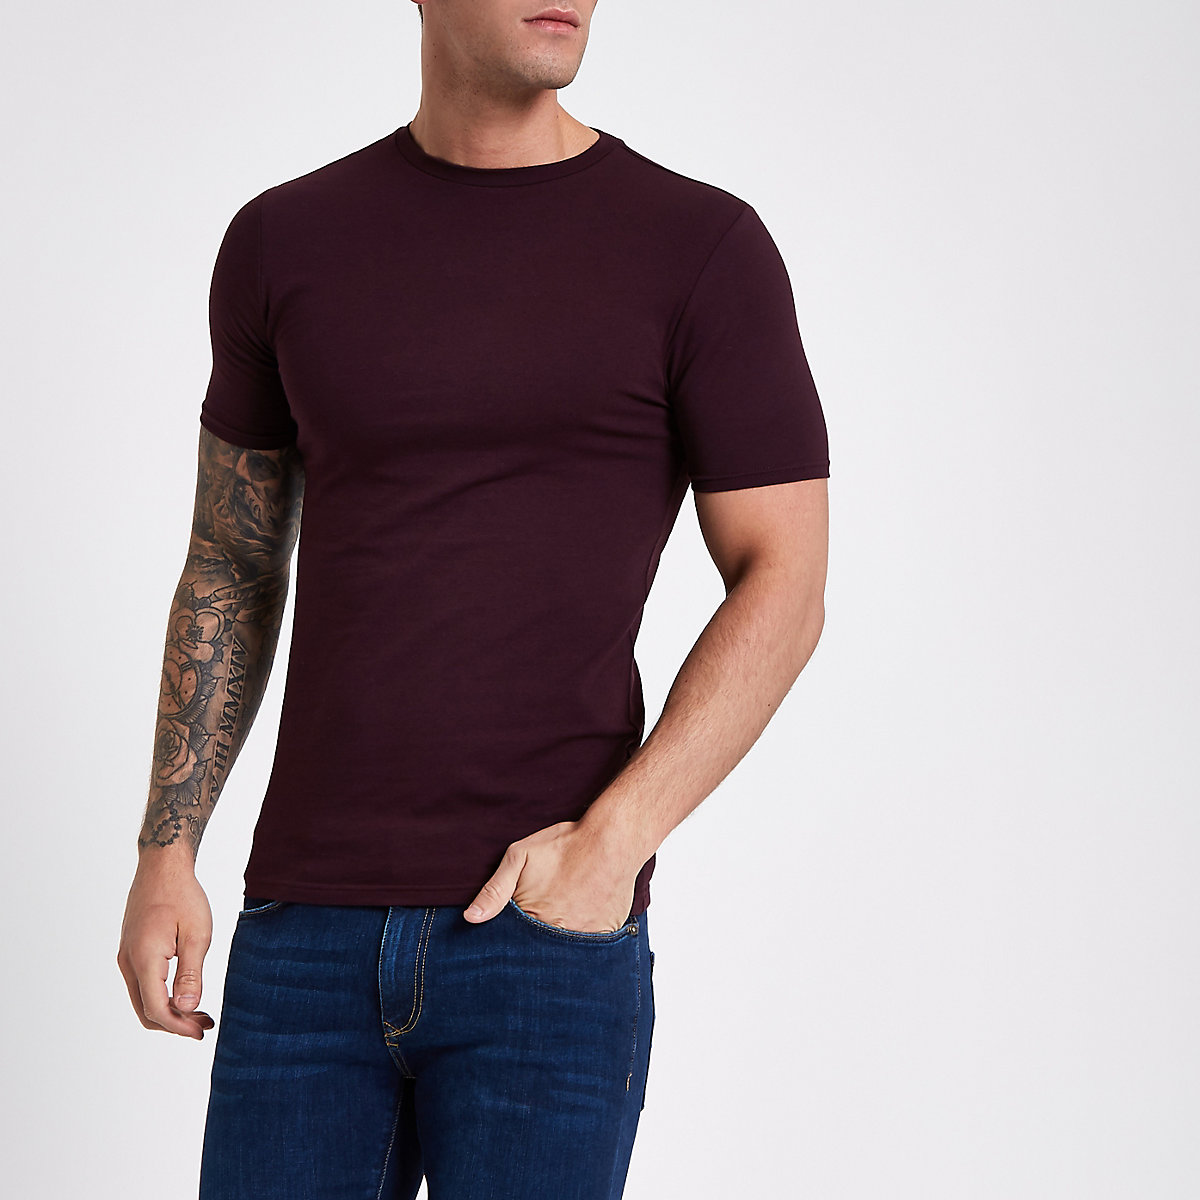 Dark red muscle fit short sleeve T-shirt